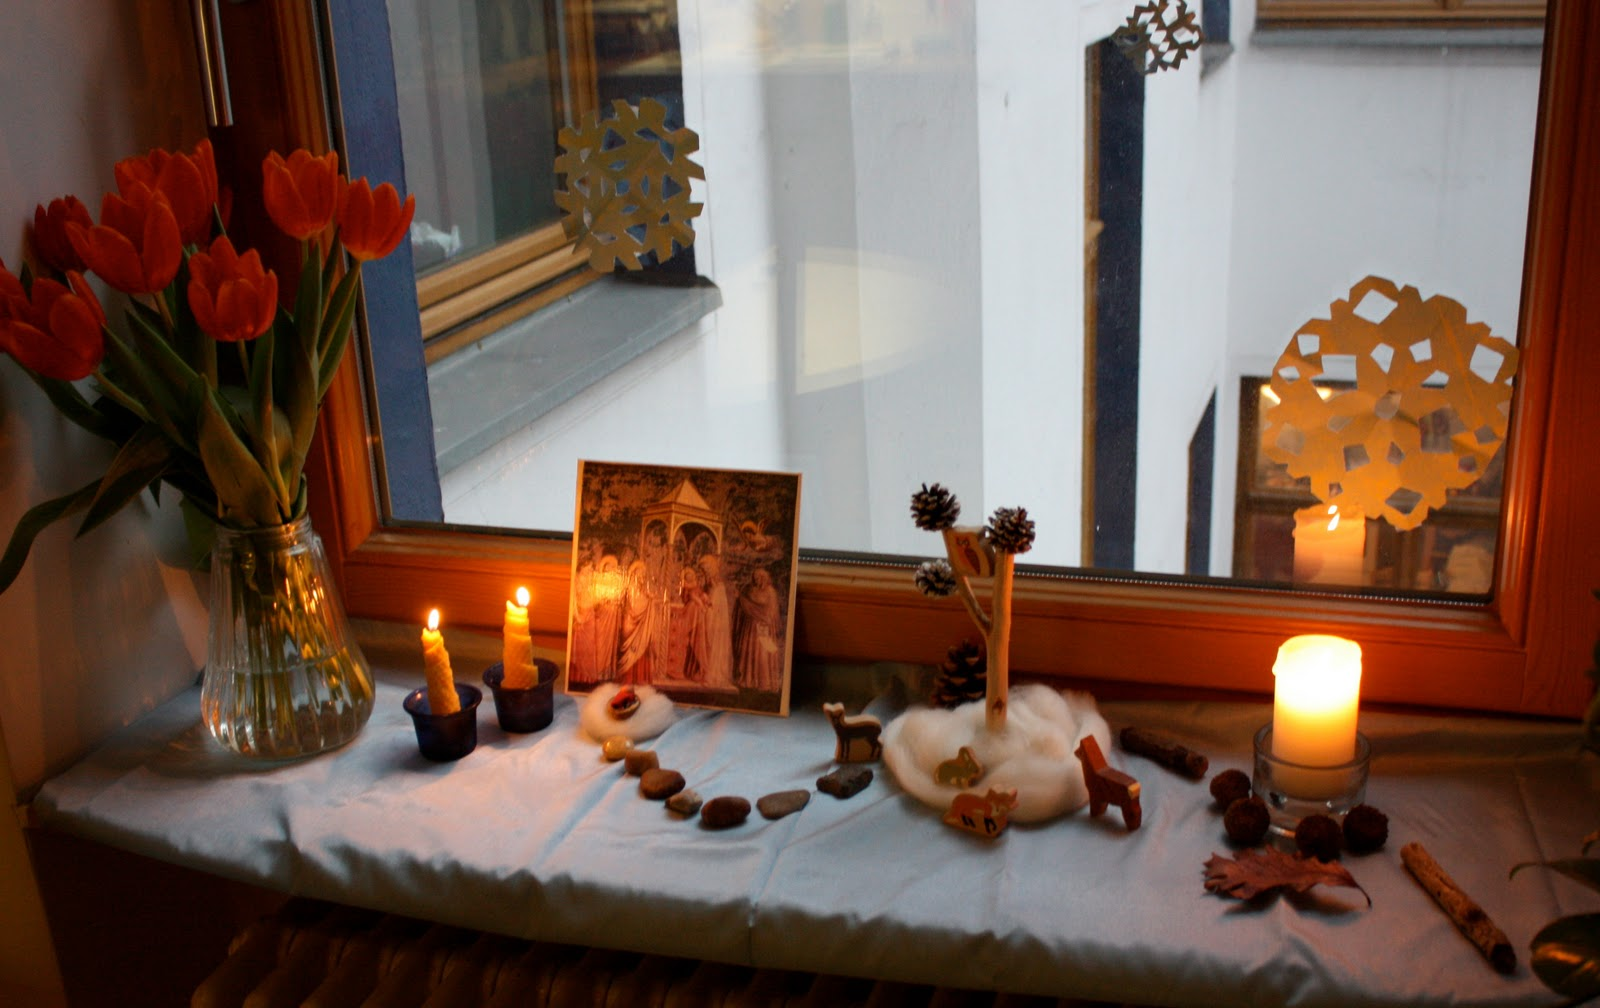 Winter nature table - On Candlemas February 2 We Remember The Story Of Baby Jesus Being Presented In The Temple We Rejoice With Simeon And Anna That God S Gift To The World